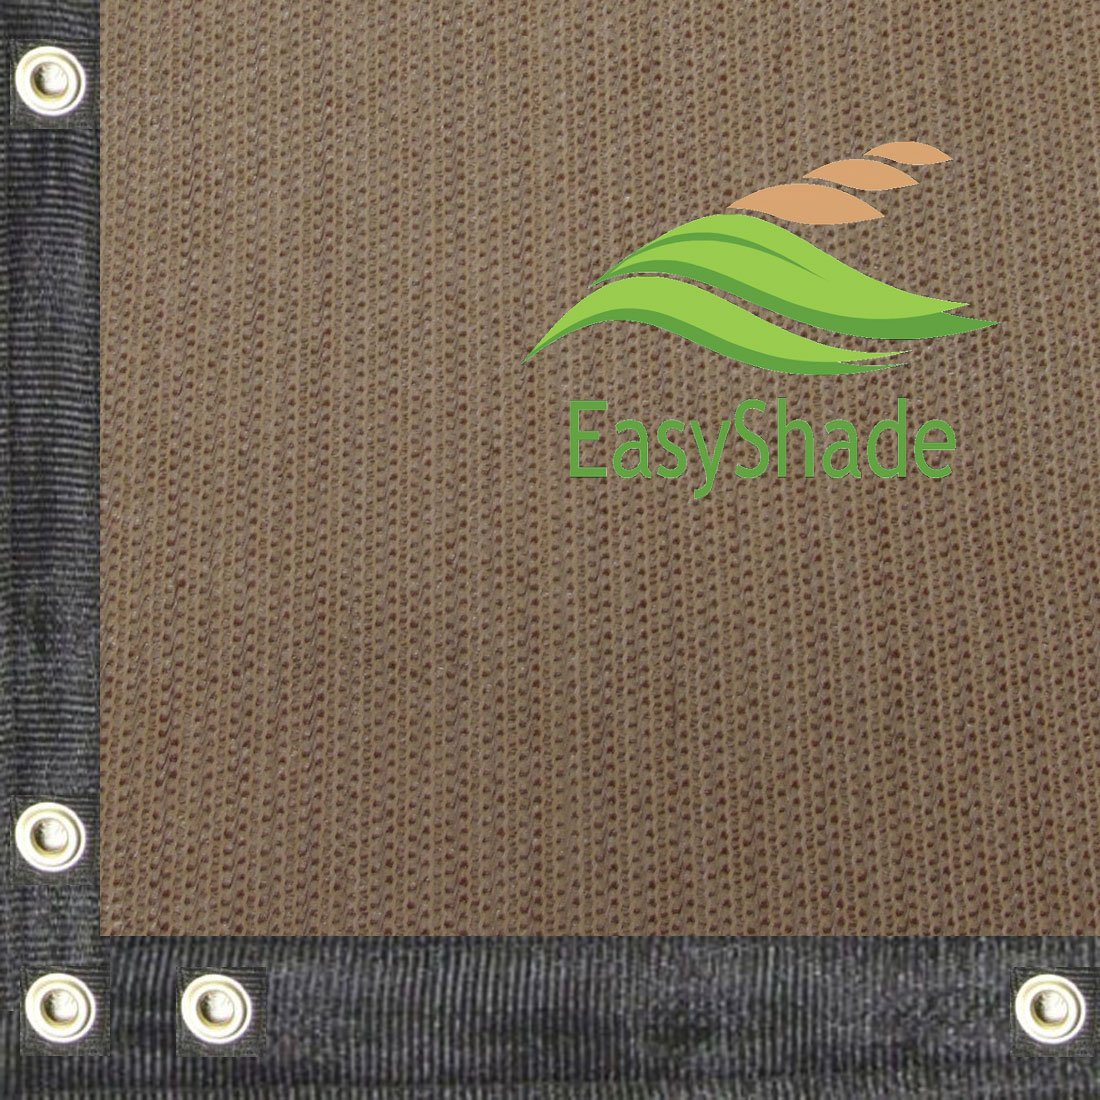 EasyShade 95% Heavy Duty Beige Sunblock Shade Cloth Taped and Grommets UV (13 x 26)